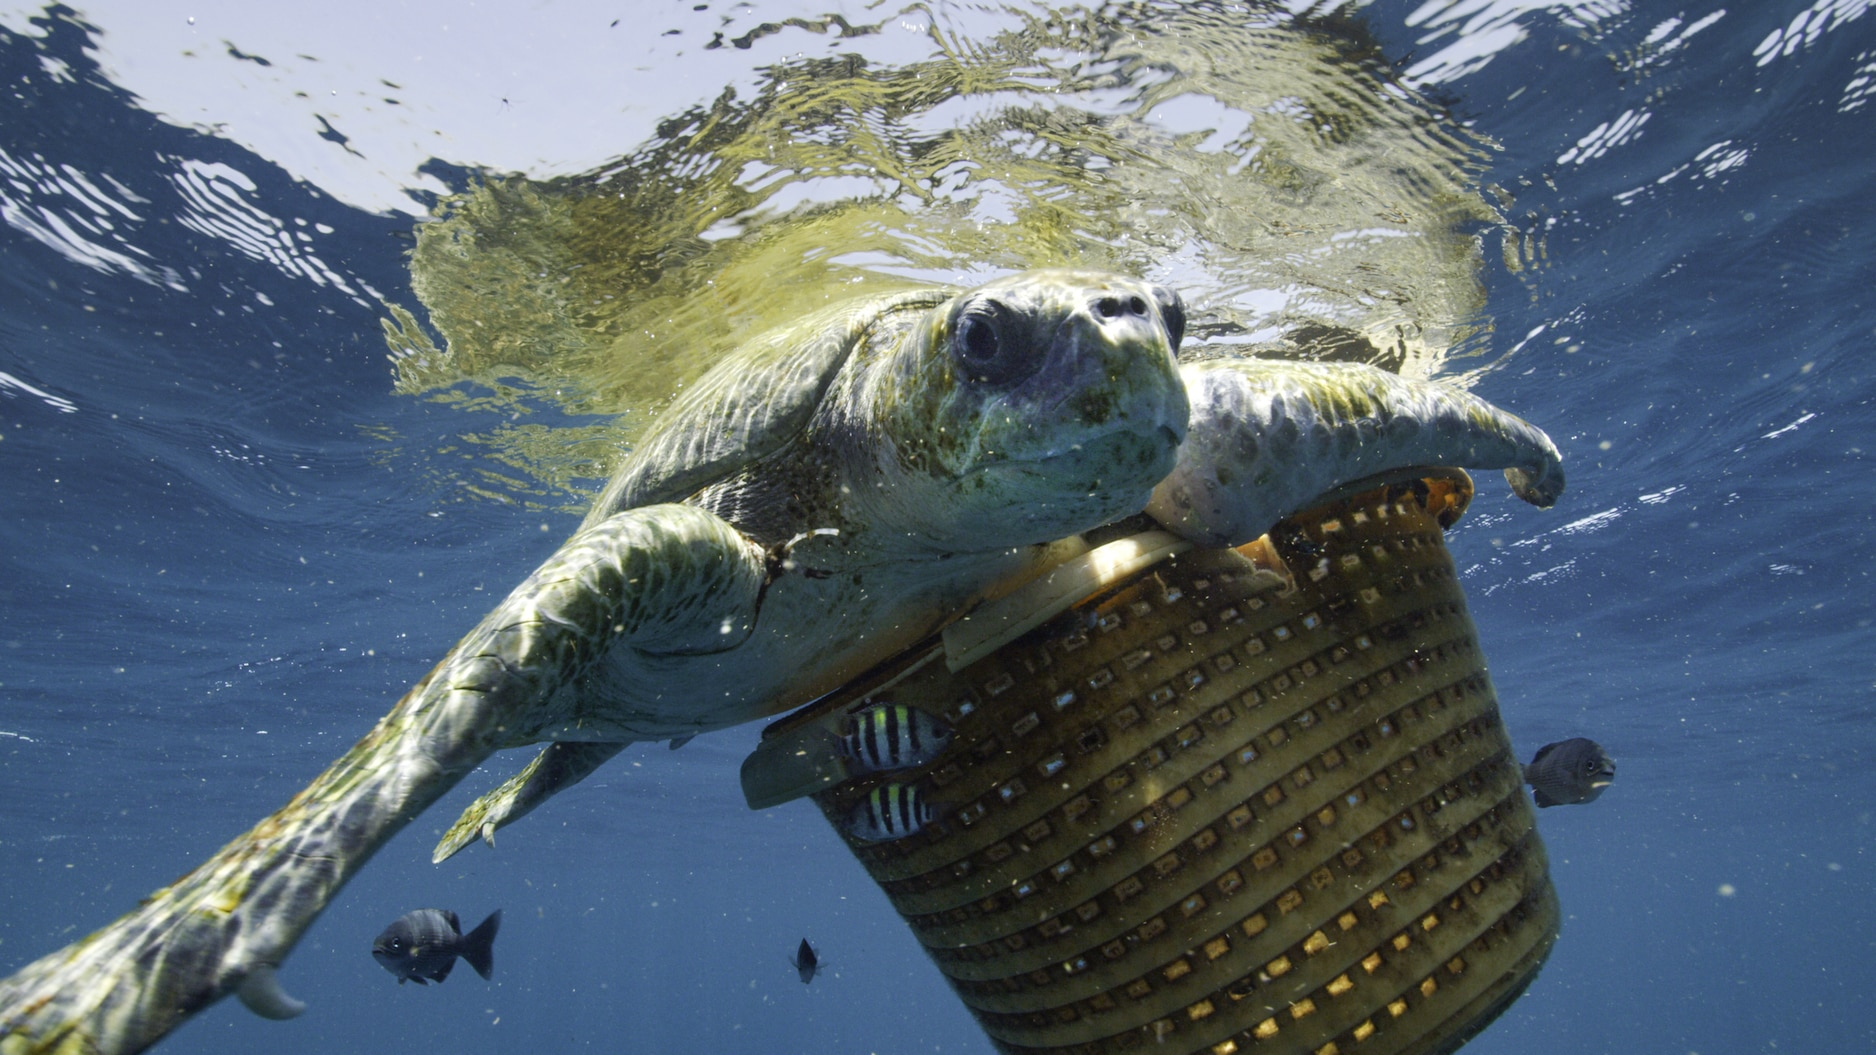 Entanglement in marine debris, like this laundry bin, is often lethal to marine wildlife, including whales. The National Geographic team saved this sea turtle while on assignment in the Indian Ocean. (National Geographic for Disney+/Luis Lamar)